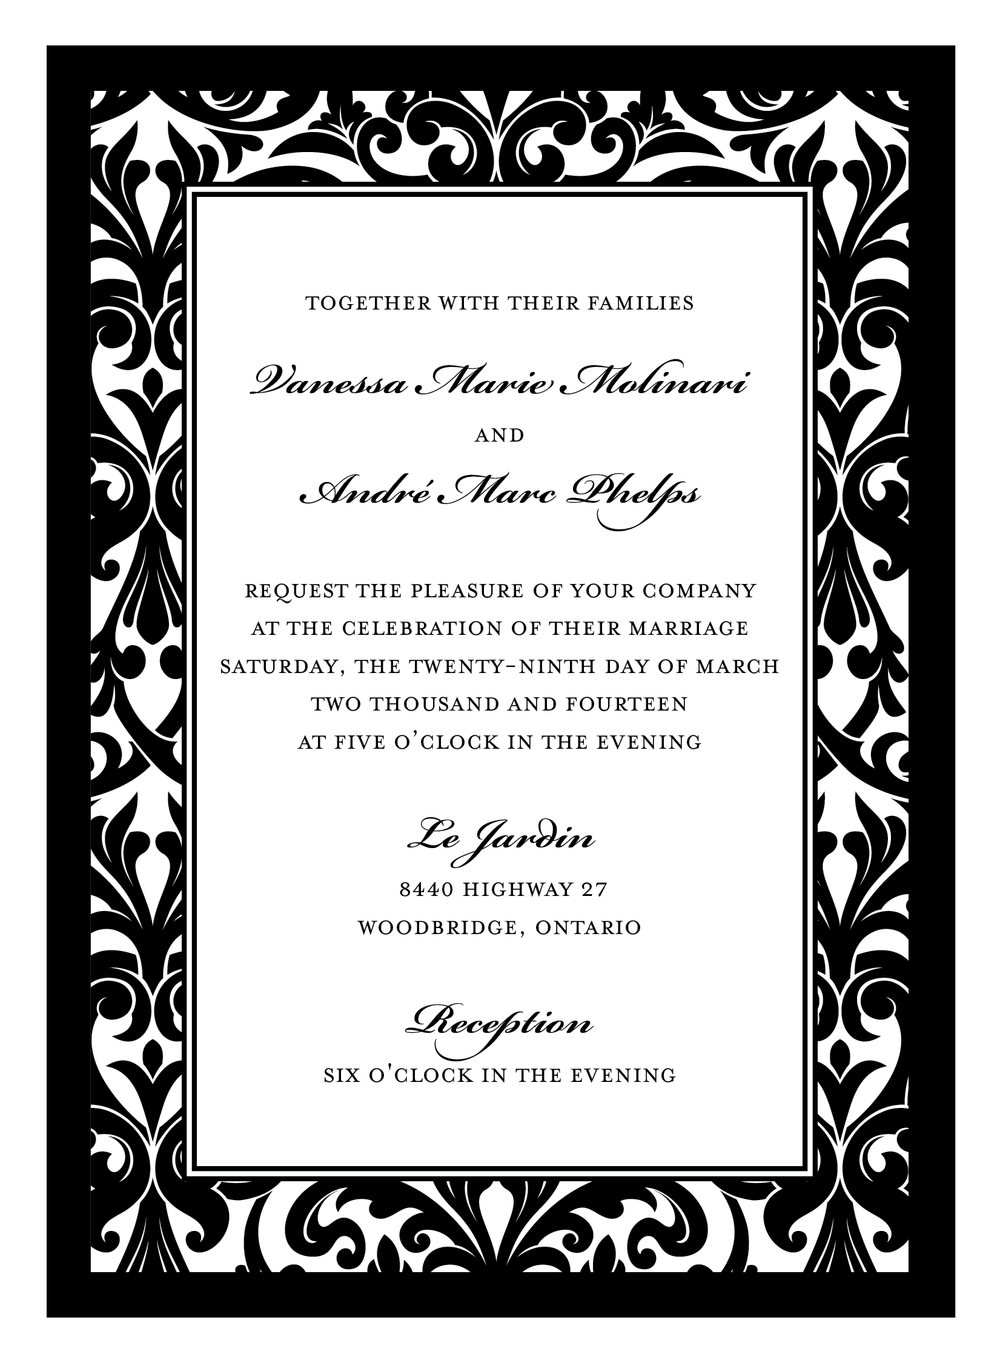 ClassicDamask_invitationLO.png